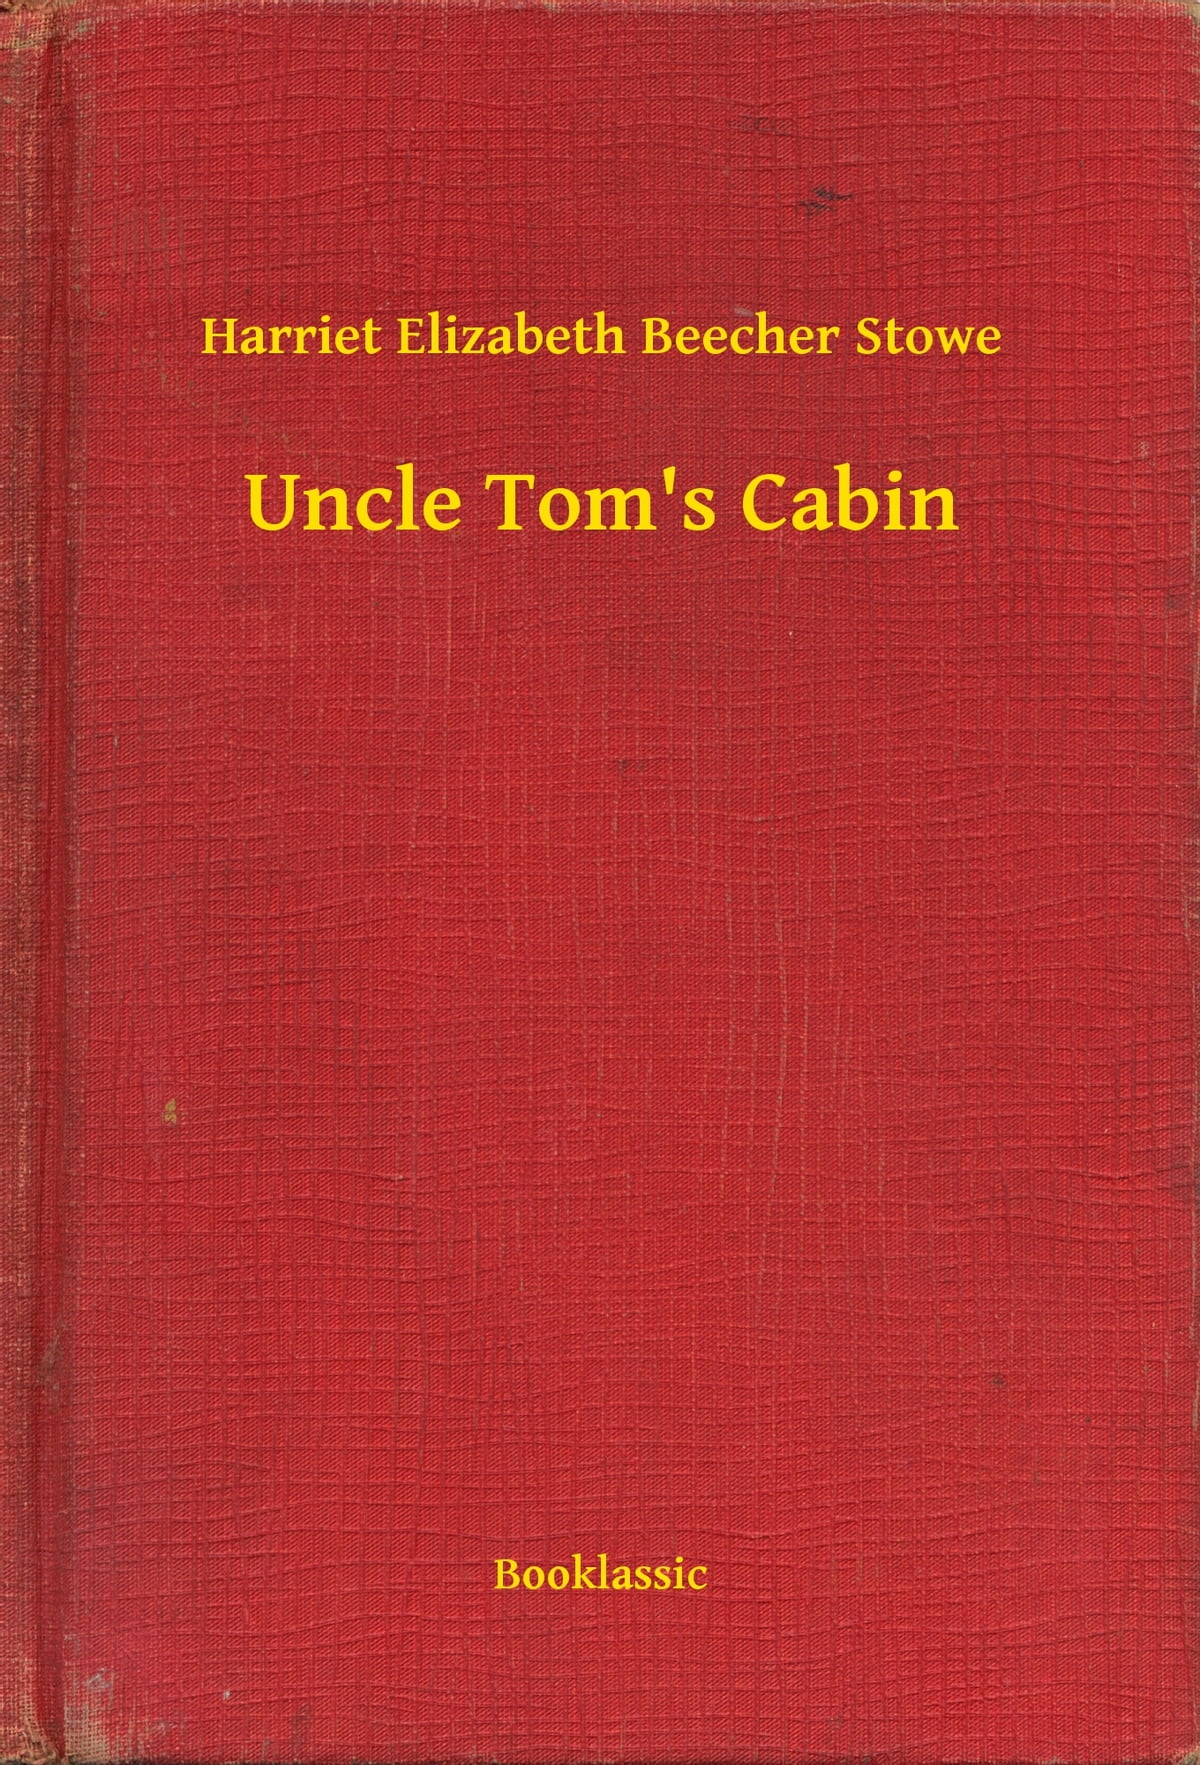 the points of harriet beecher stowe in writing uncle toms cabin Information and articles about harriet beecher stowe,  including uncle toms cabin  harriet won a writing contest in the western monthly magazine and began.